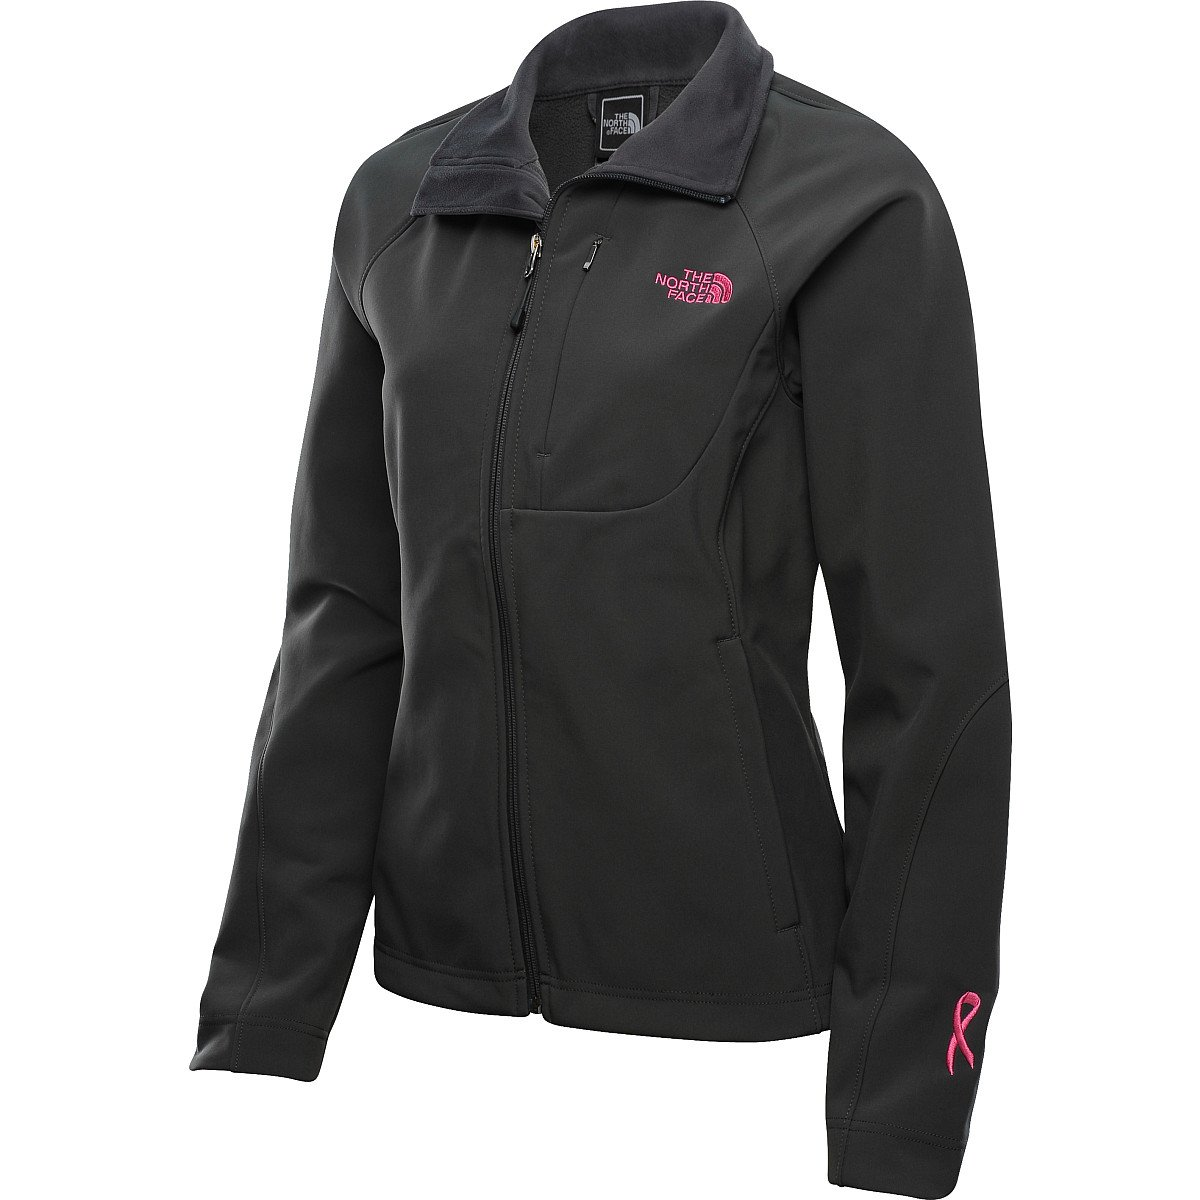 North Face Apex Womens Jacket Sale Northface Discount North Face On Sale Discount